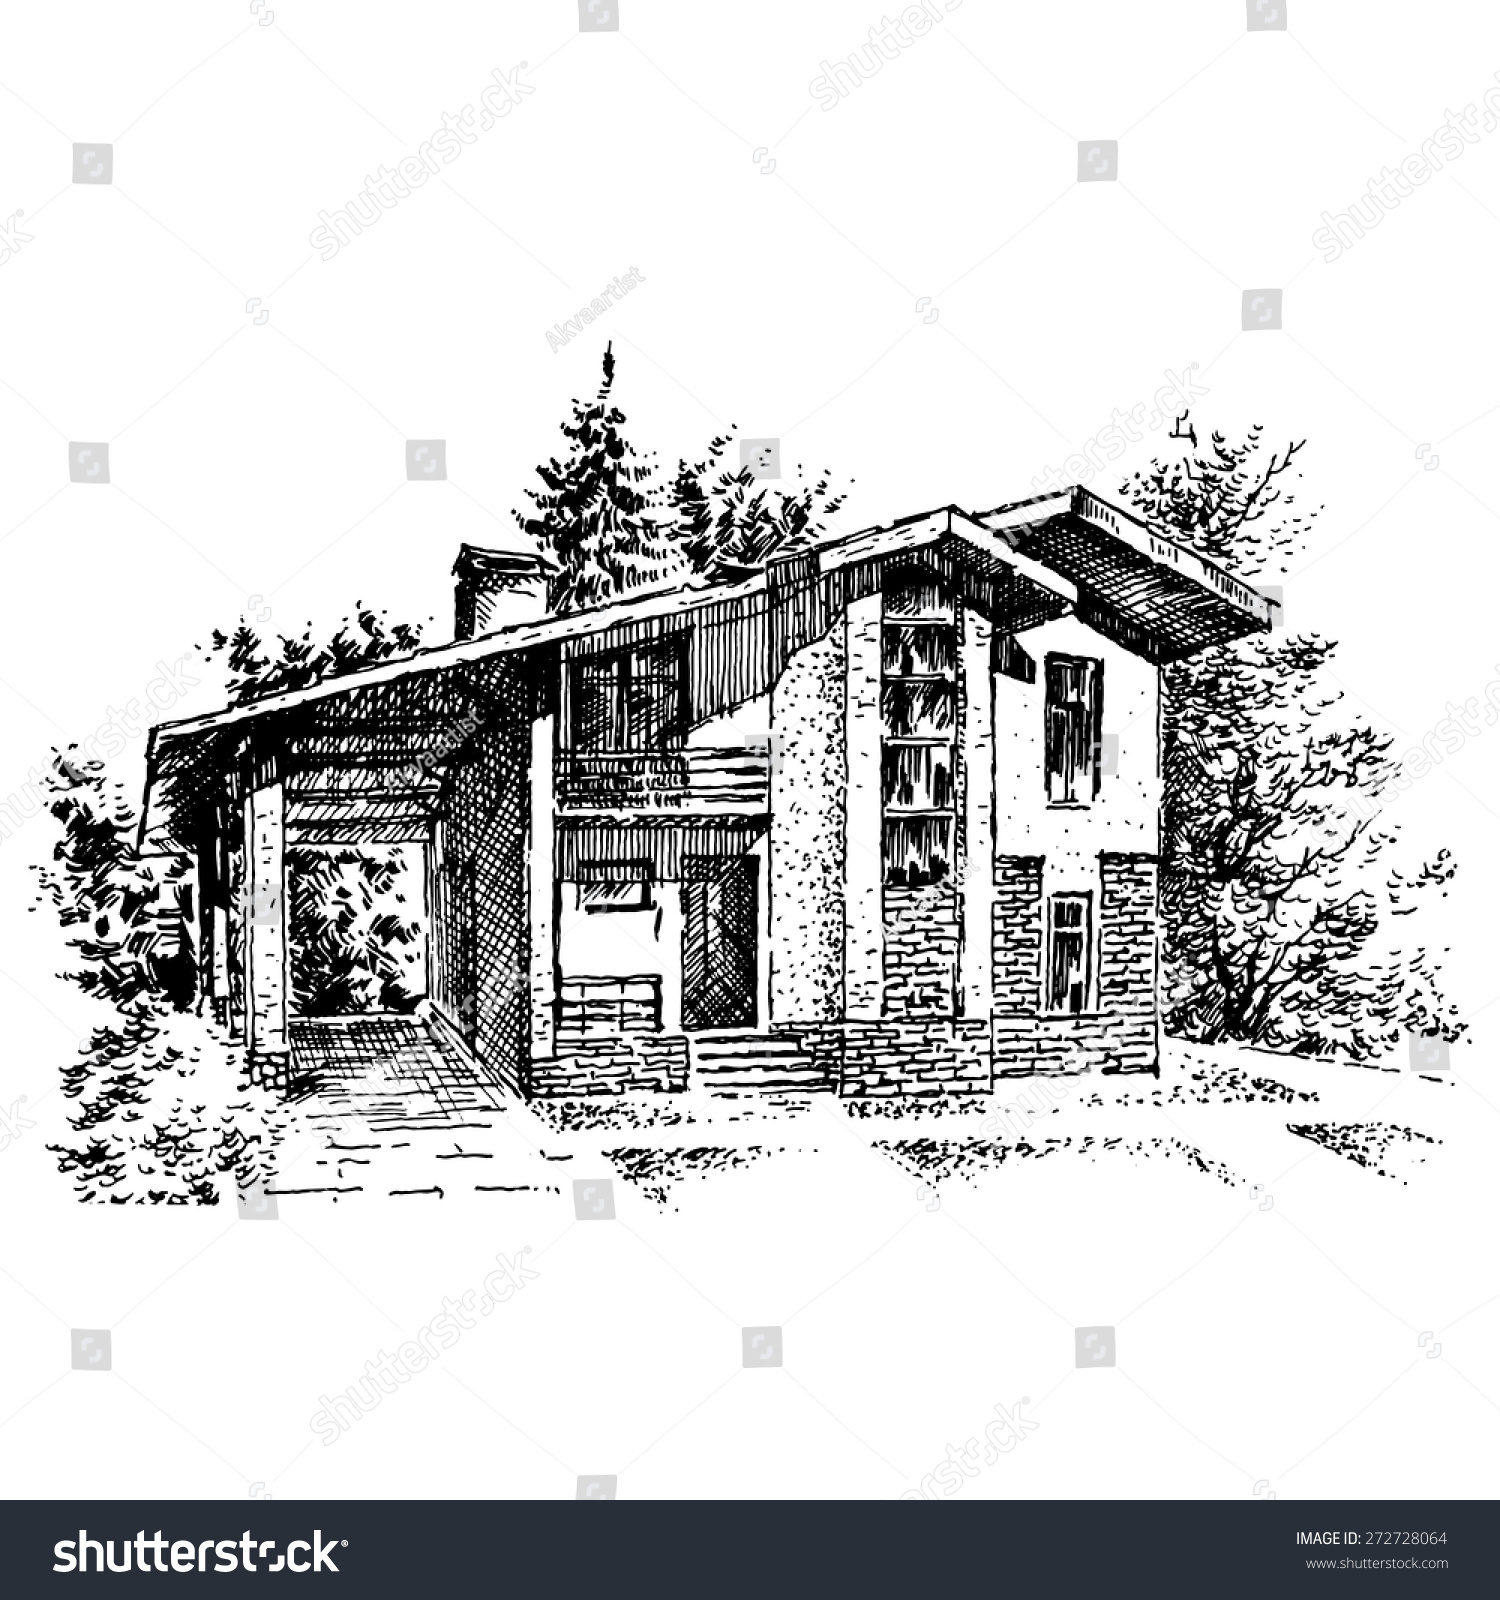 family home engraving - illustration 1-建筑物